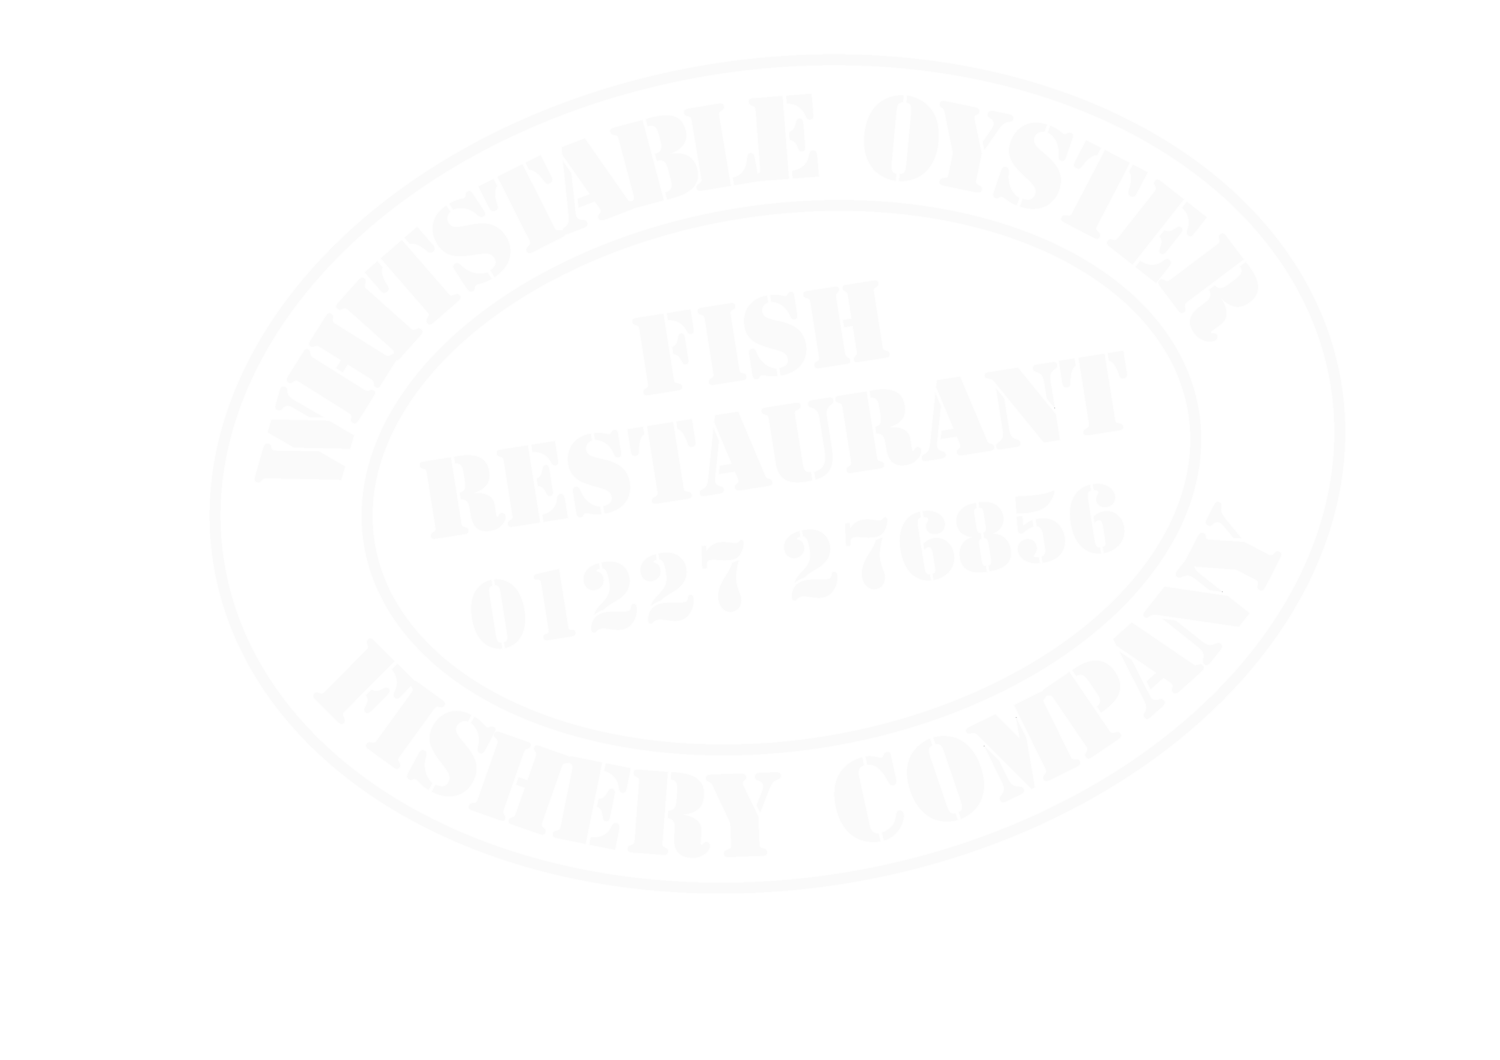 The Whitstable Oyster Company